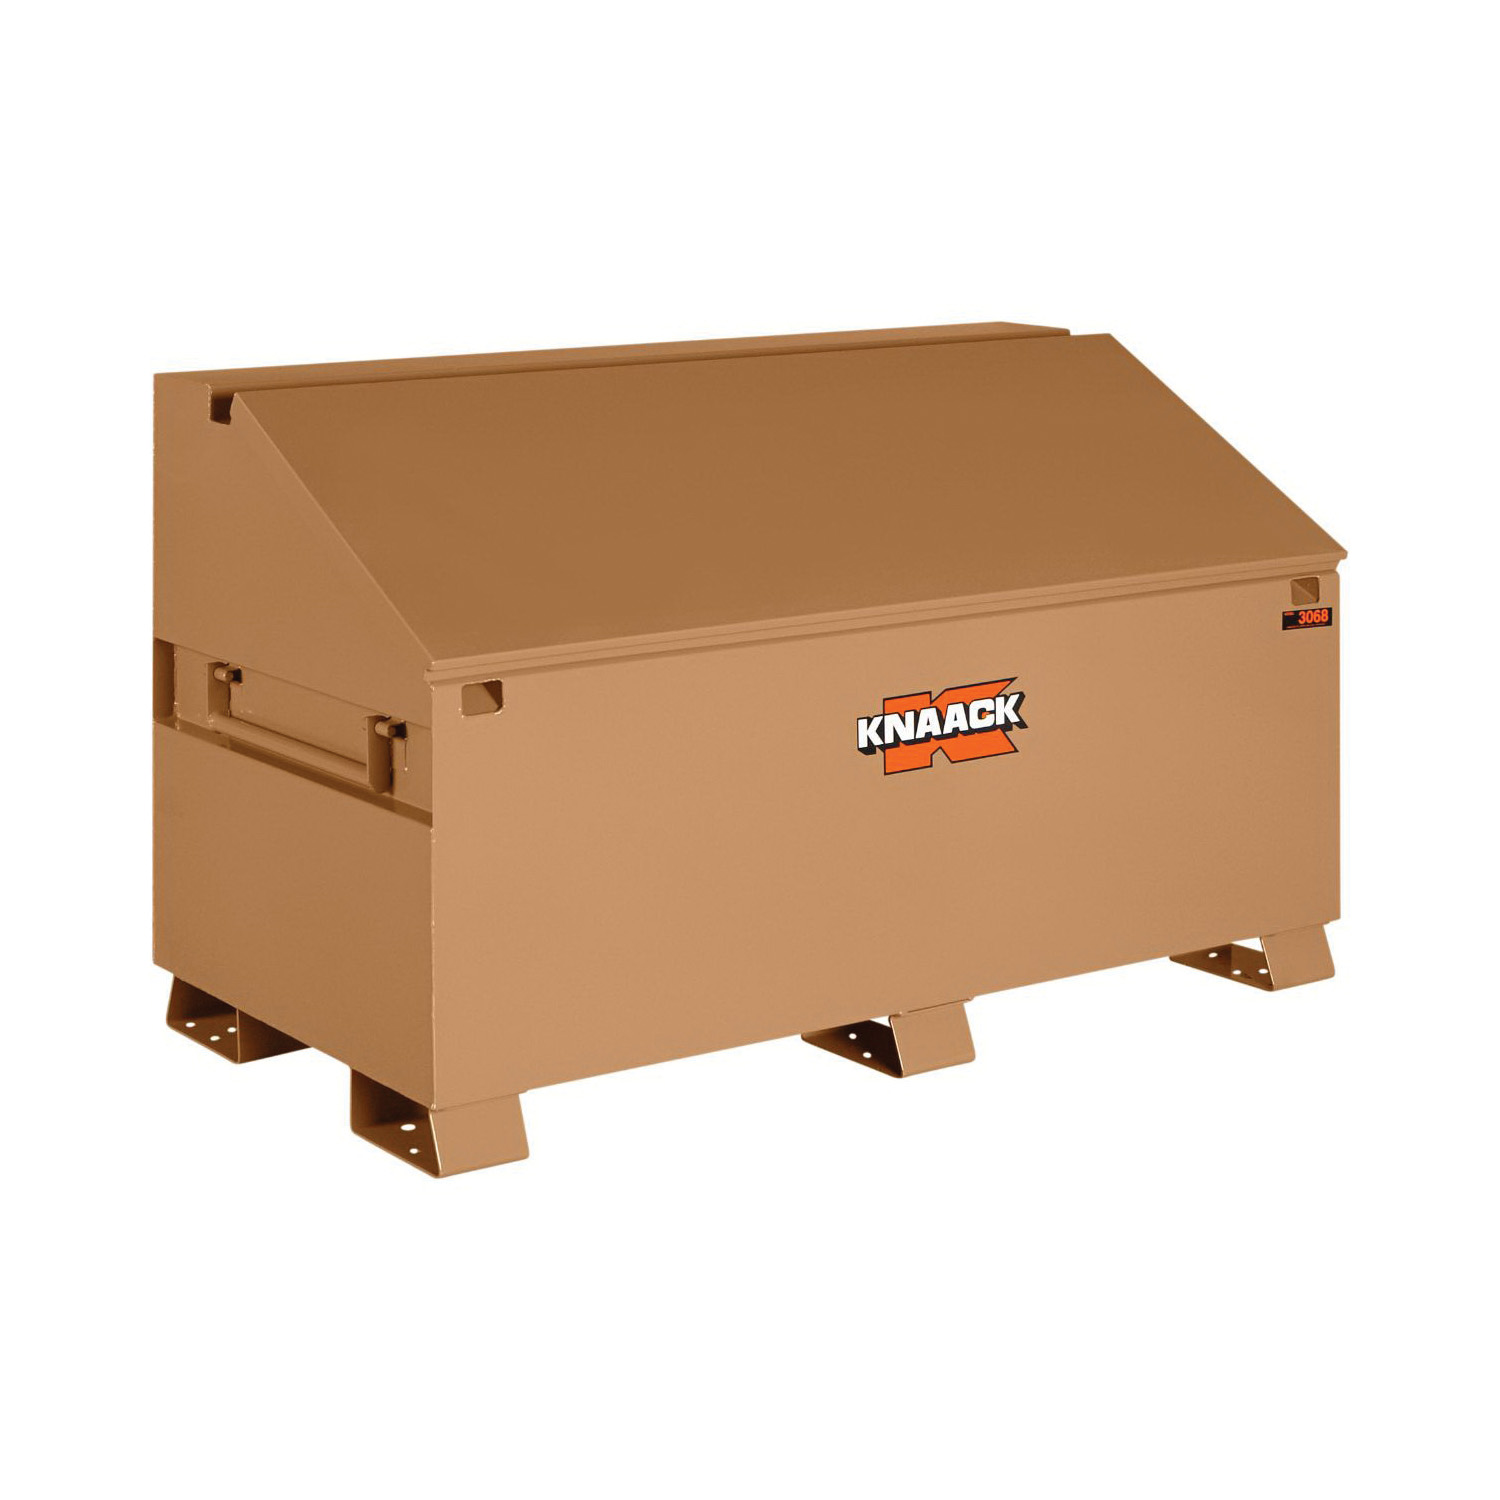 KNAACK® CLASSIC® 3068 Storage Chest, 28 in x 30 in W x 60 in D, 31 cu-ft Storage, Steel